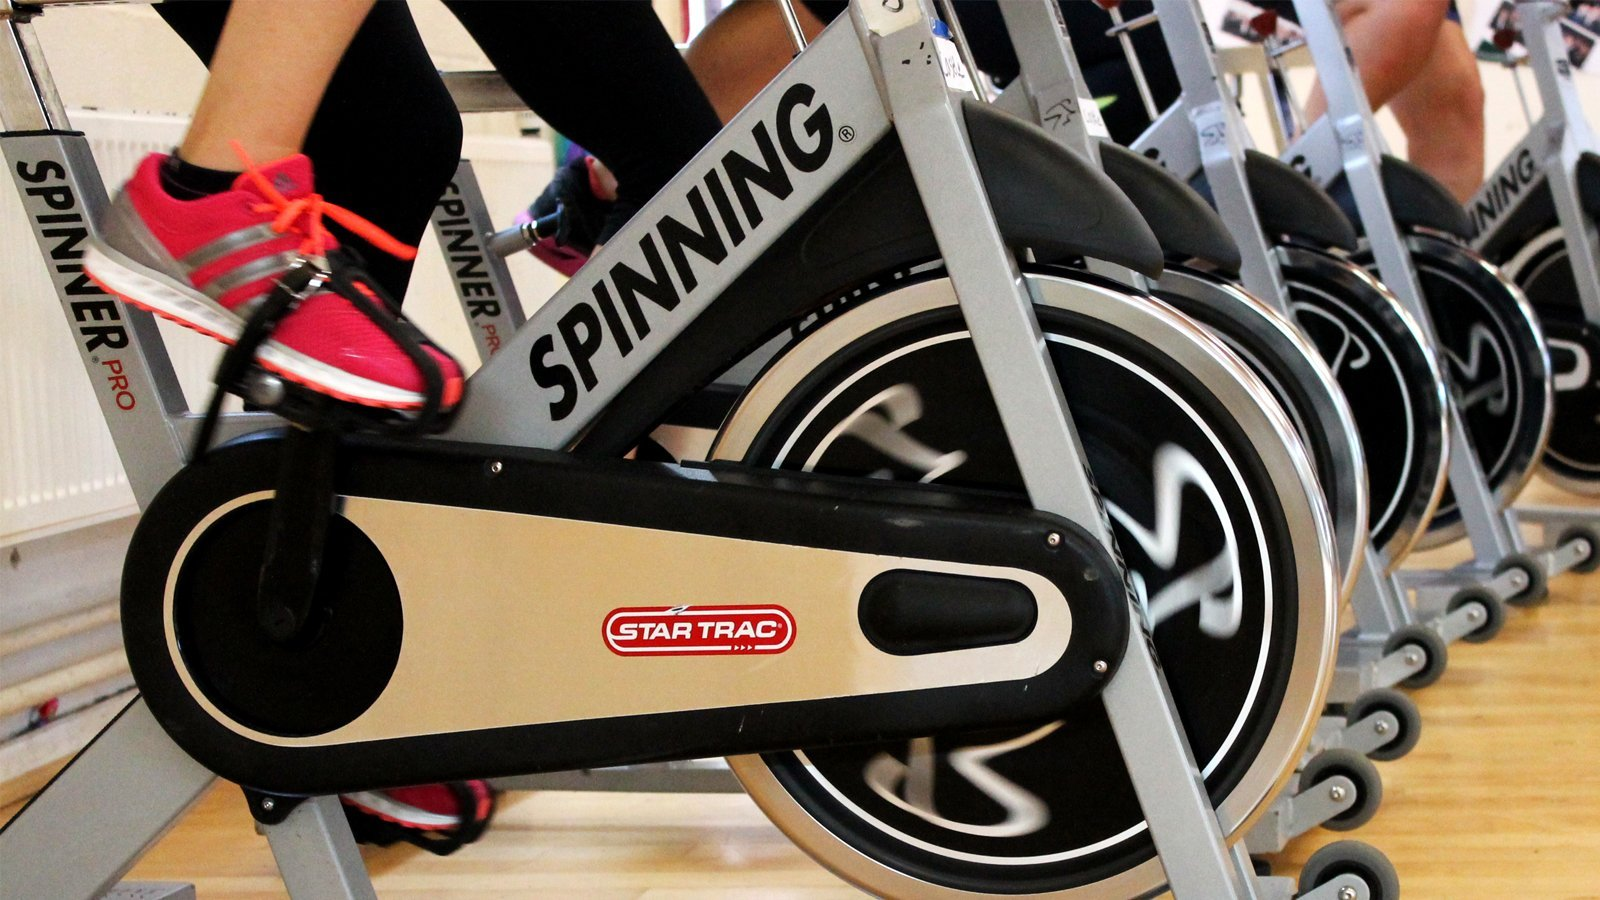 spin classes in abu dhabi uae for all ages and levels